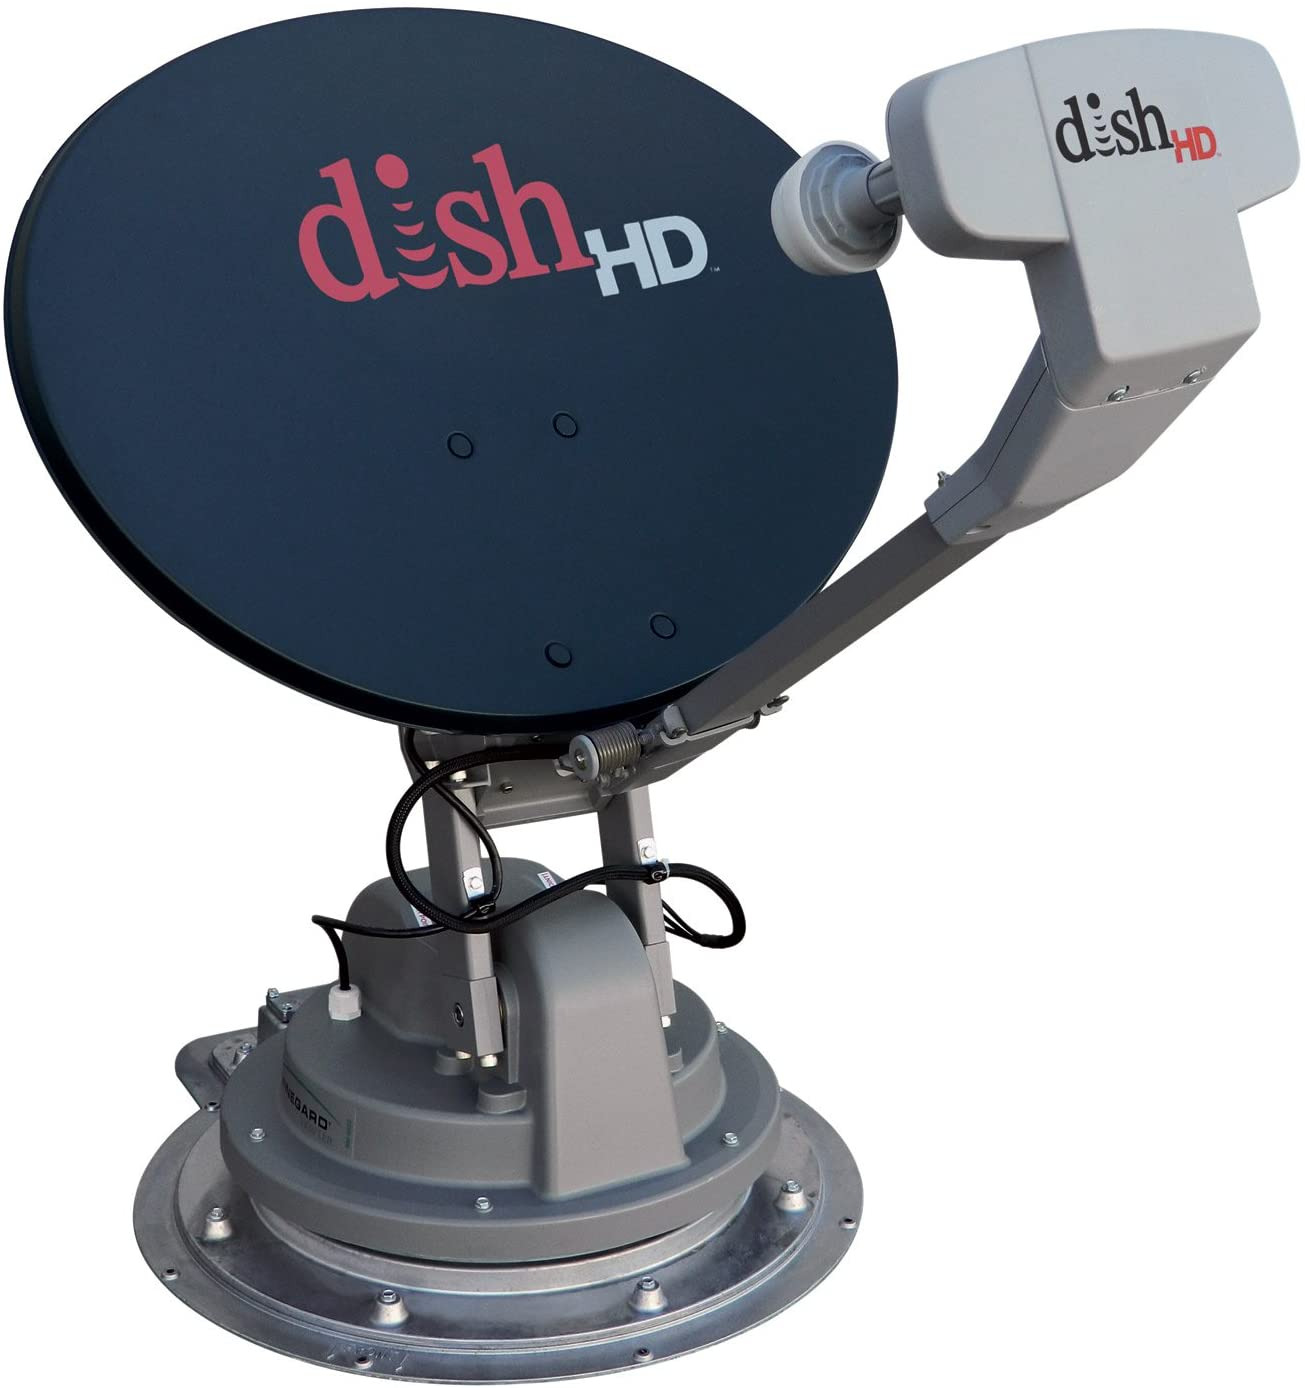 Best Satellite Dishes For Rvs Camping And Tailgating For 2021 Cabletv Com